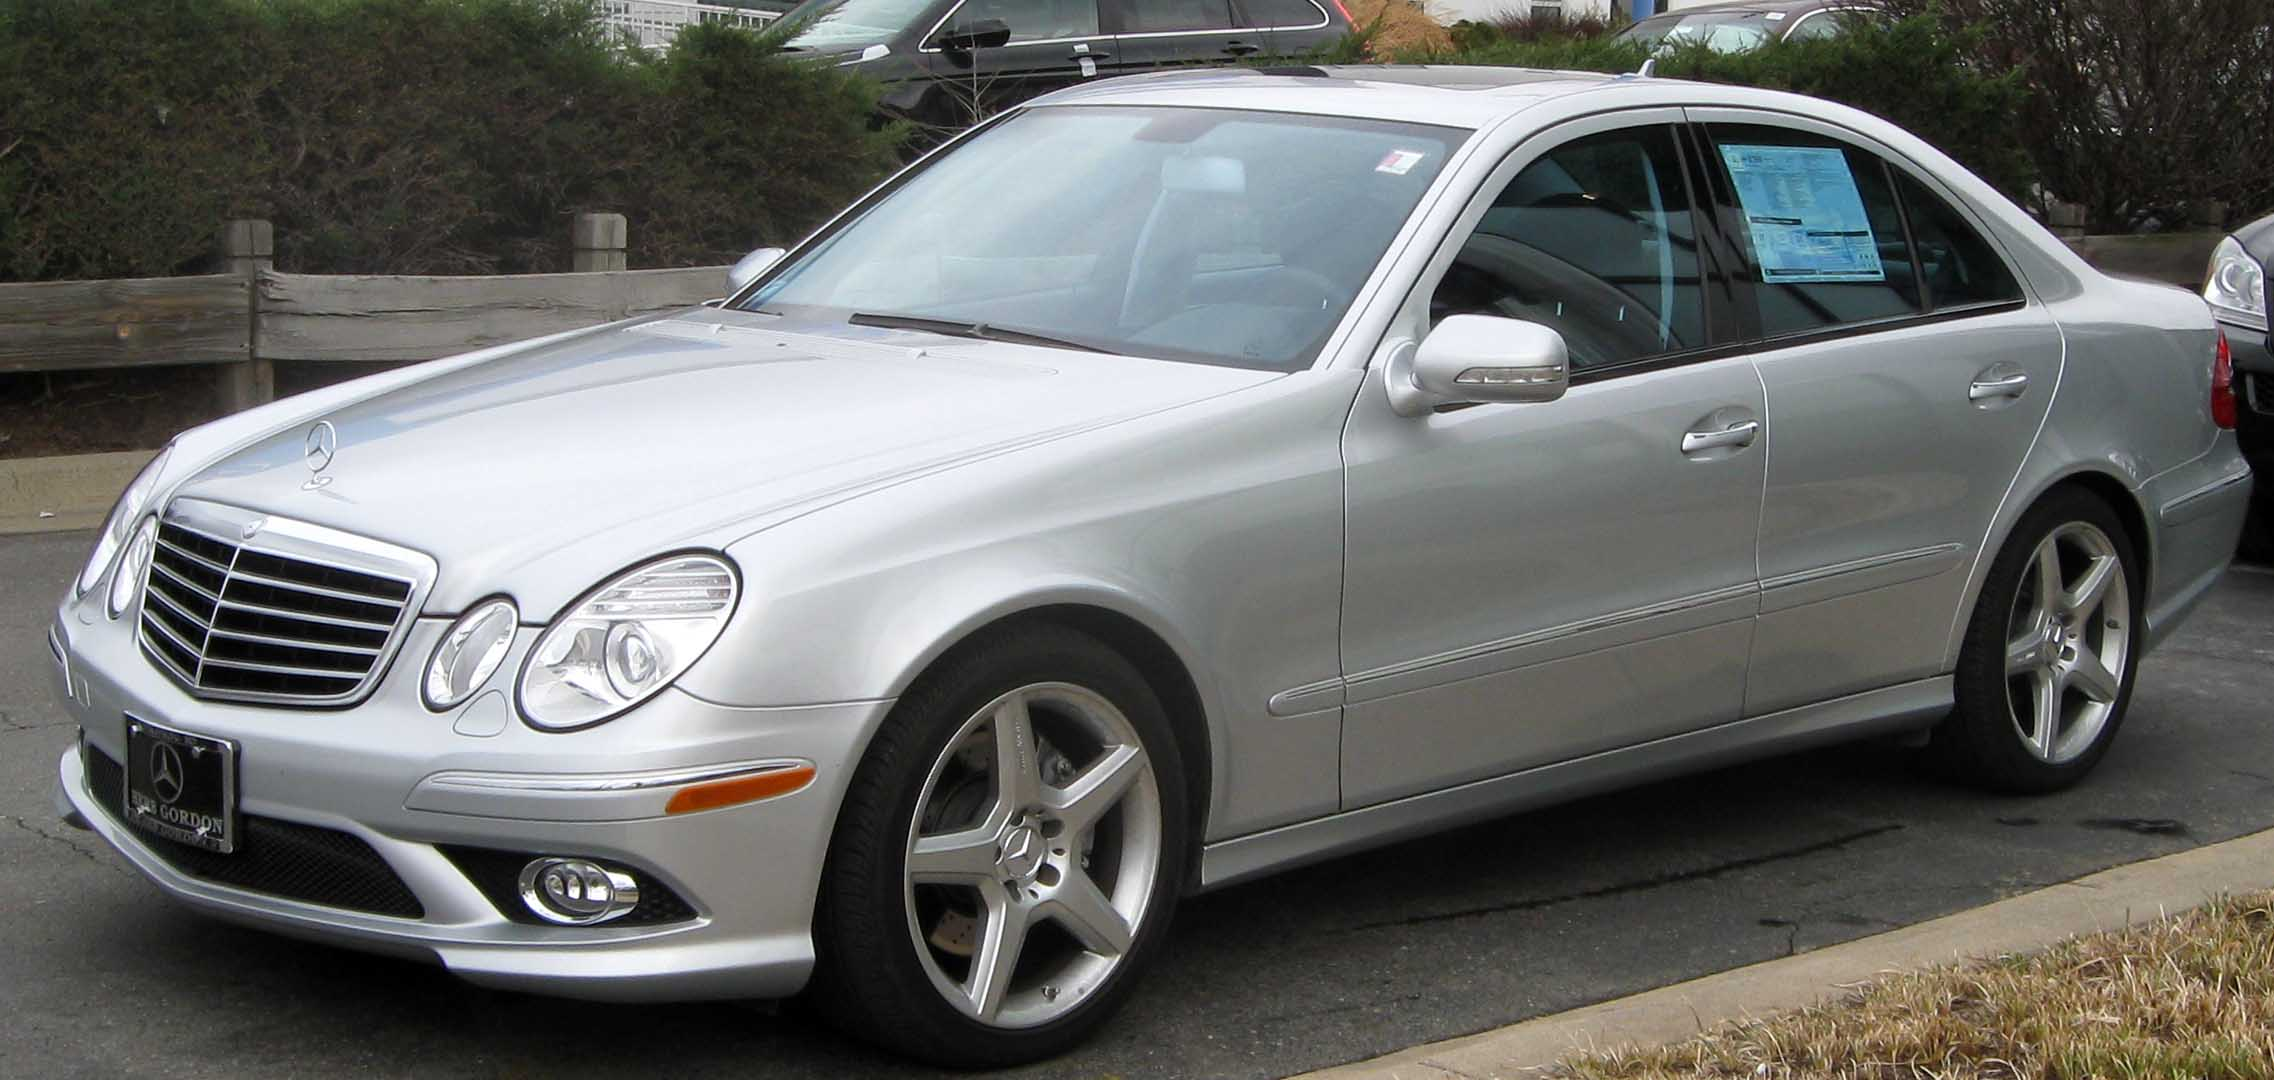 File:2009 Mercedes Benz E350